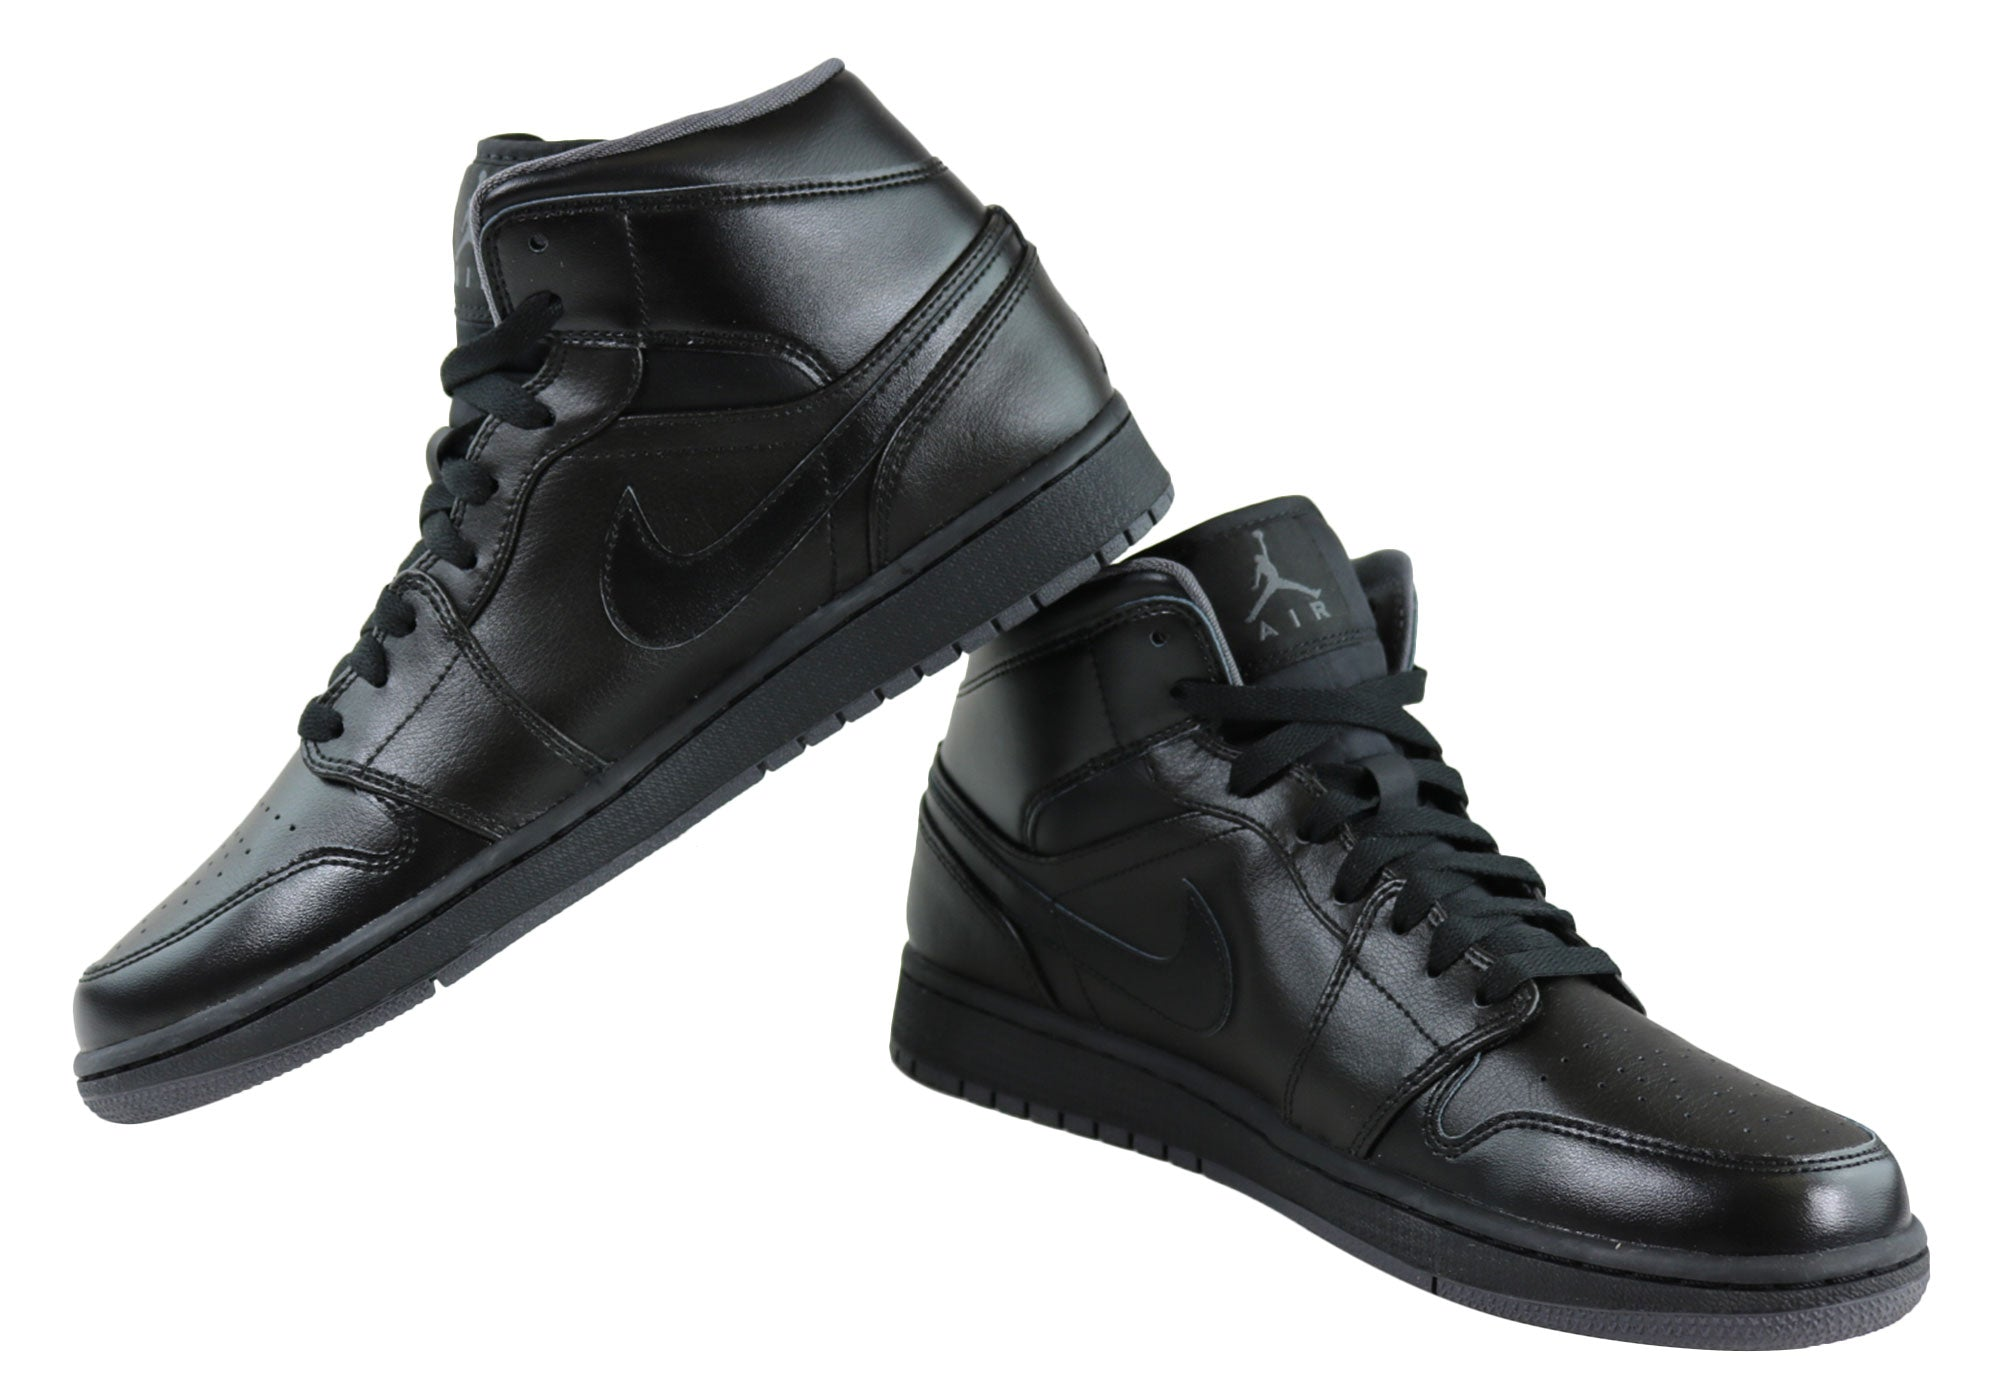 dbce490a40fbe4 Nike Air Jordan 1 Mid Leather Hi Tops Basketball Shoes